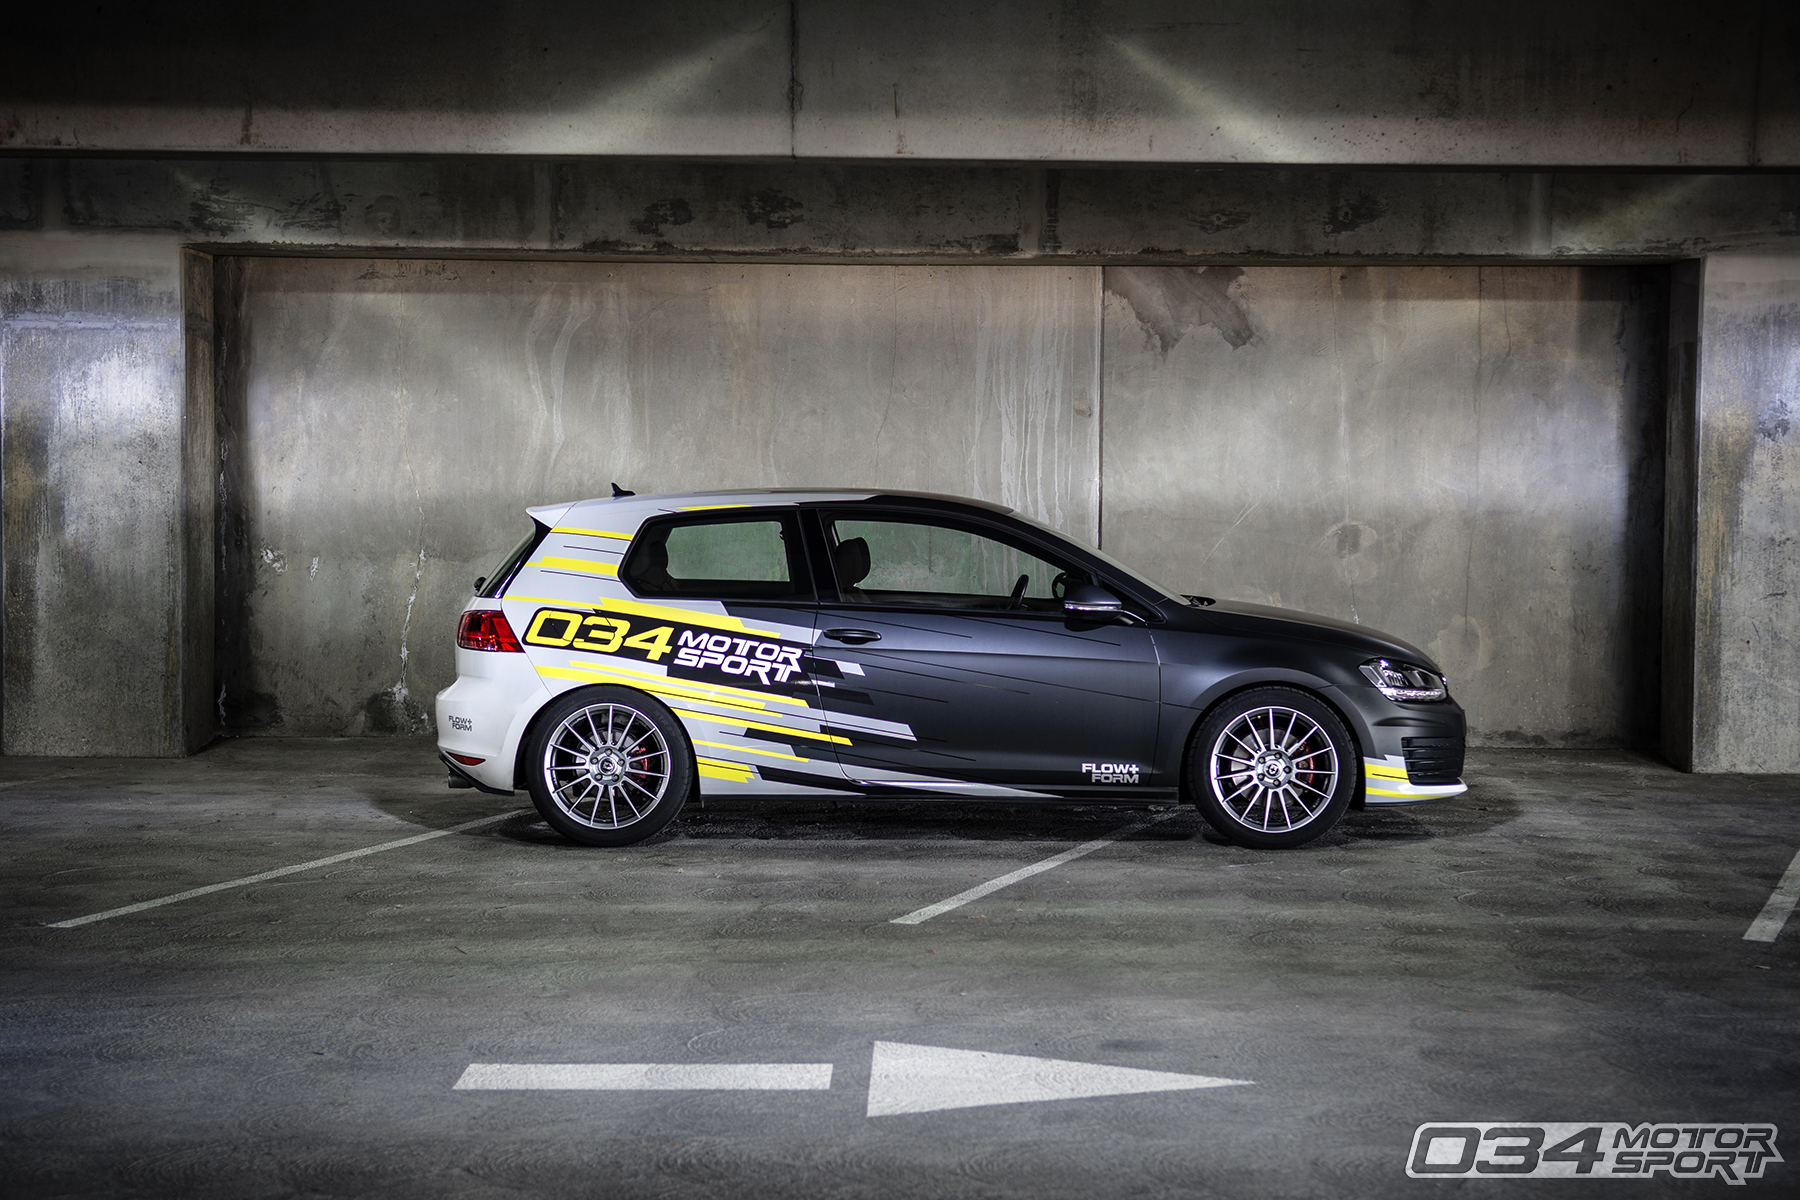 Mk7 Volkswagen GTI Lowered on Dynamic+ Lowering Springs